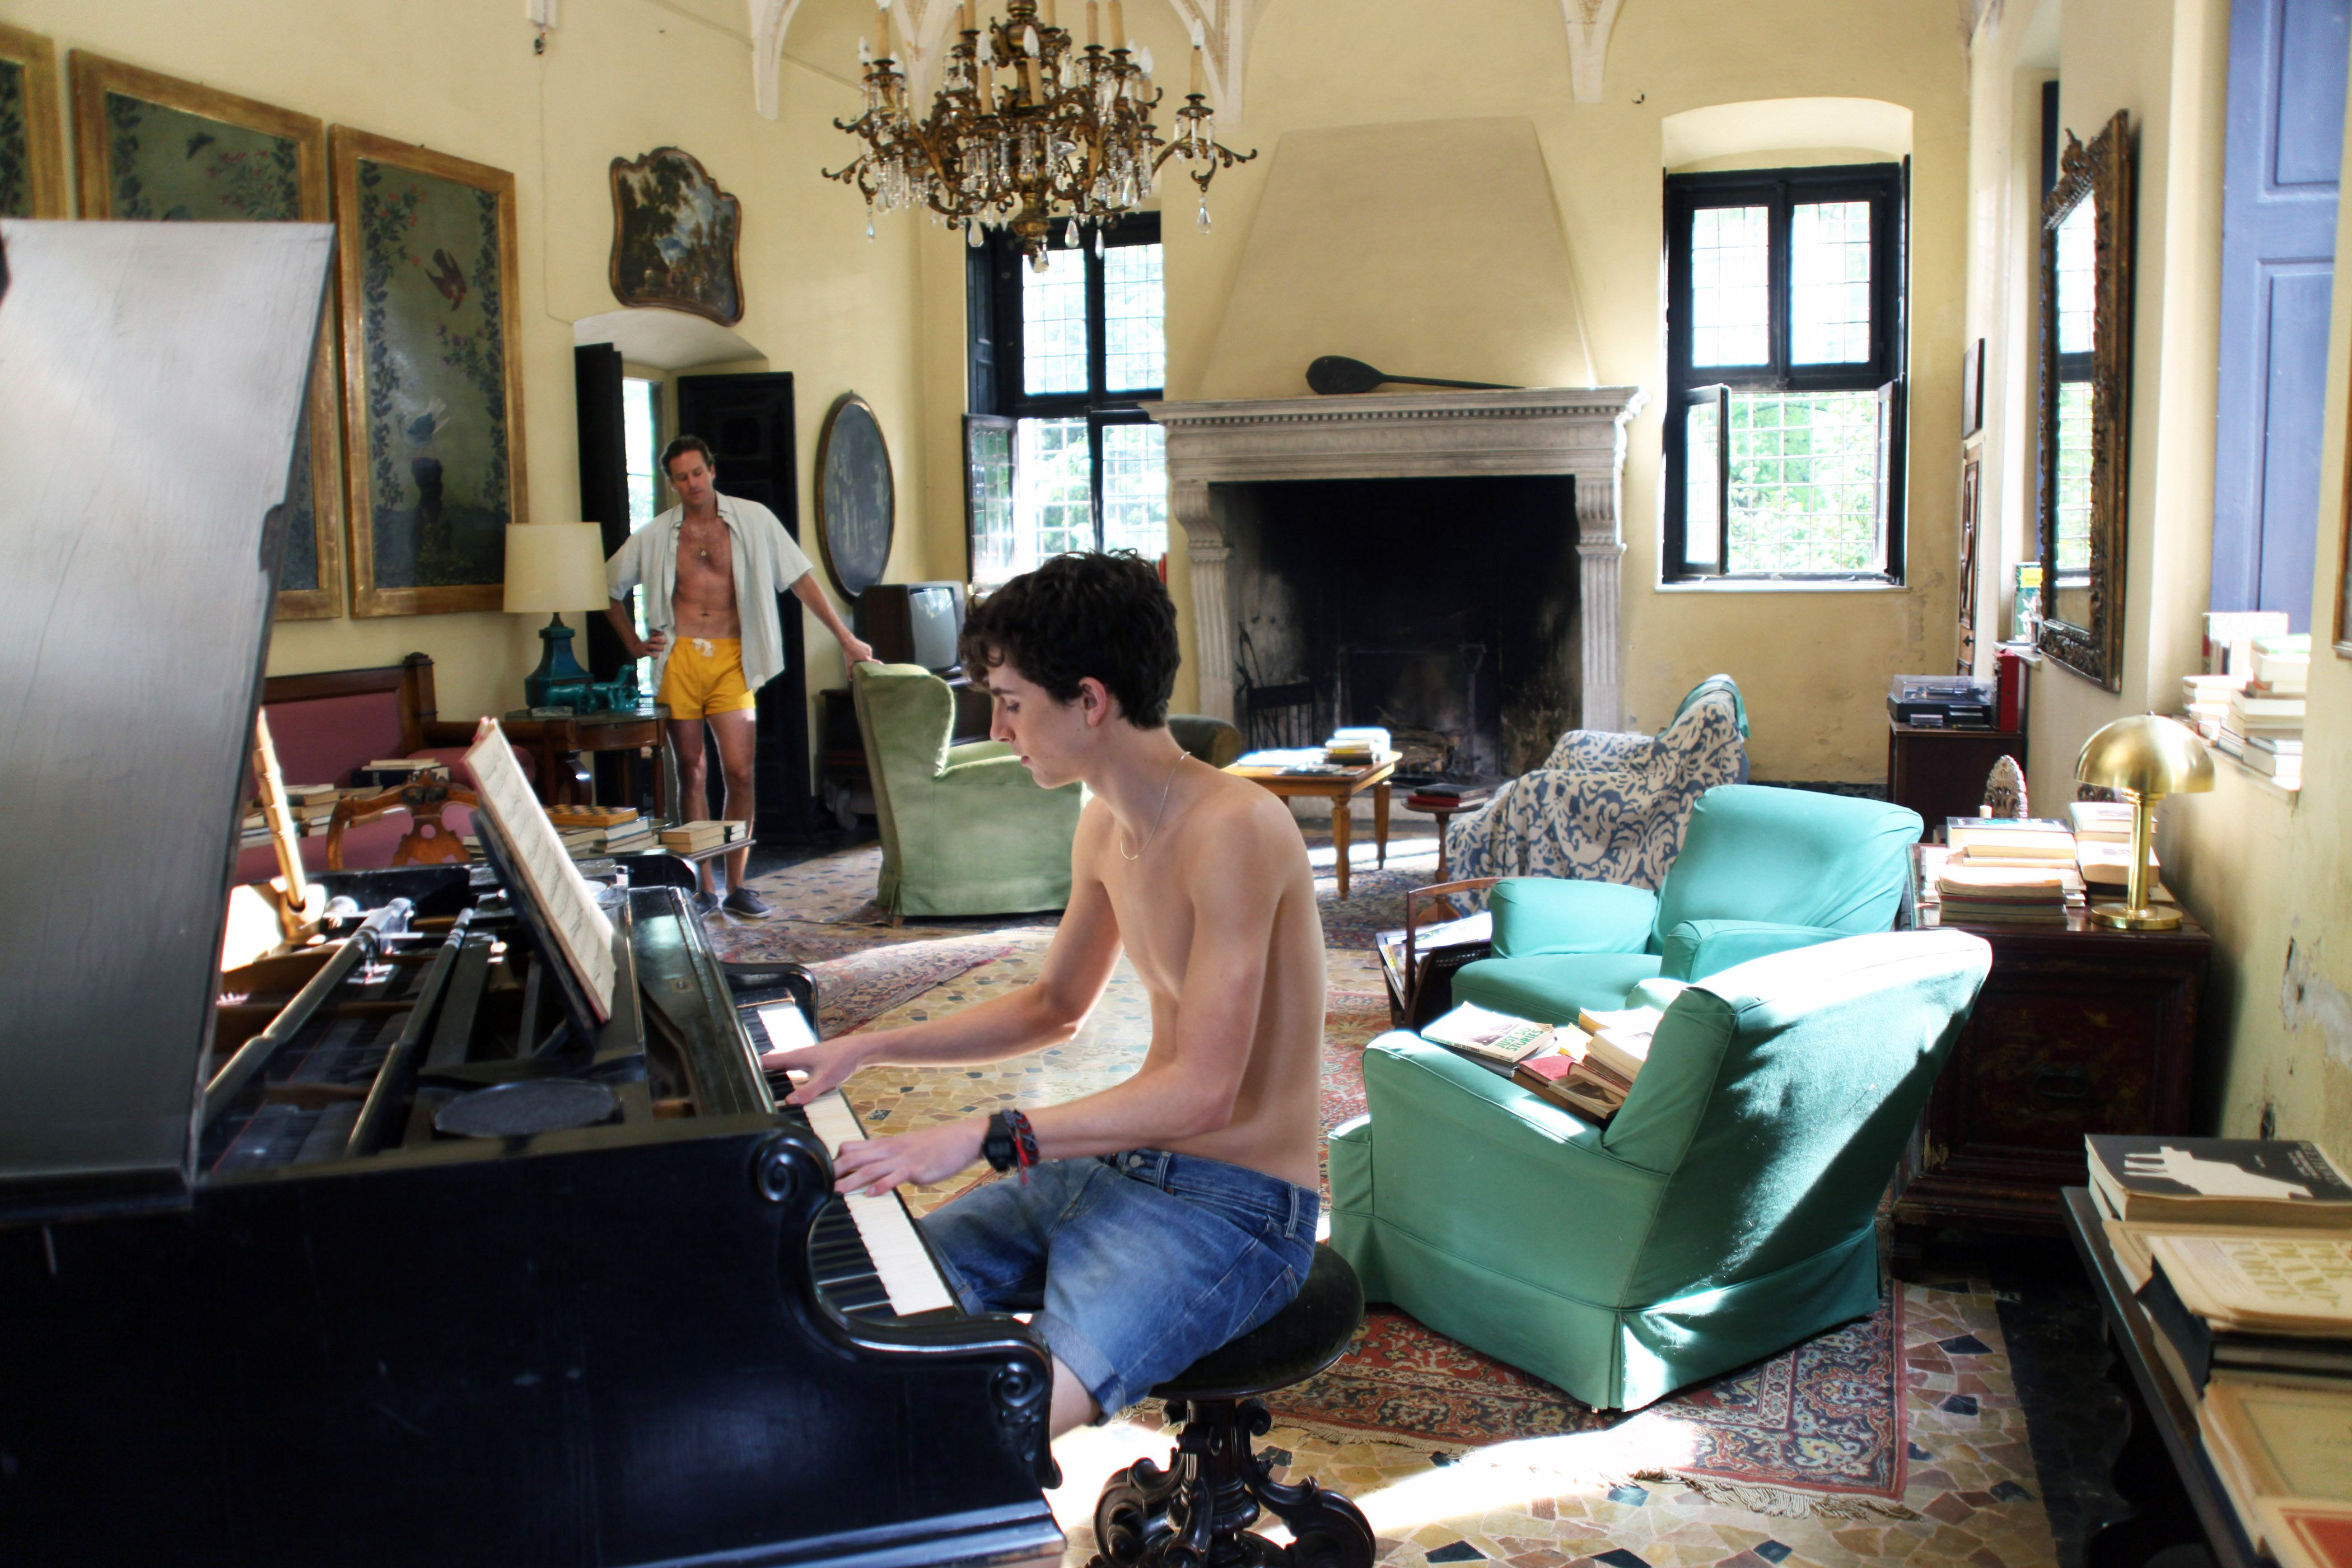 Timothée Chalamet and Armie Hammer Are Returning for the Call Me by Your Name Sequel